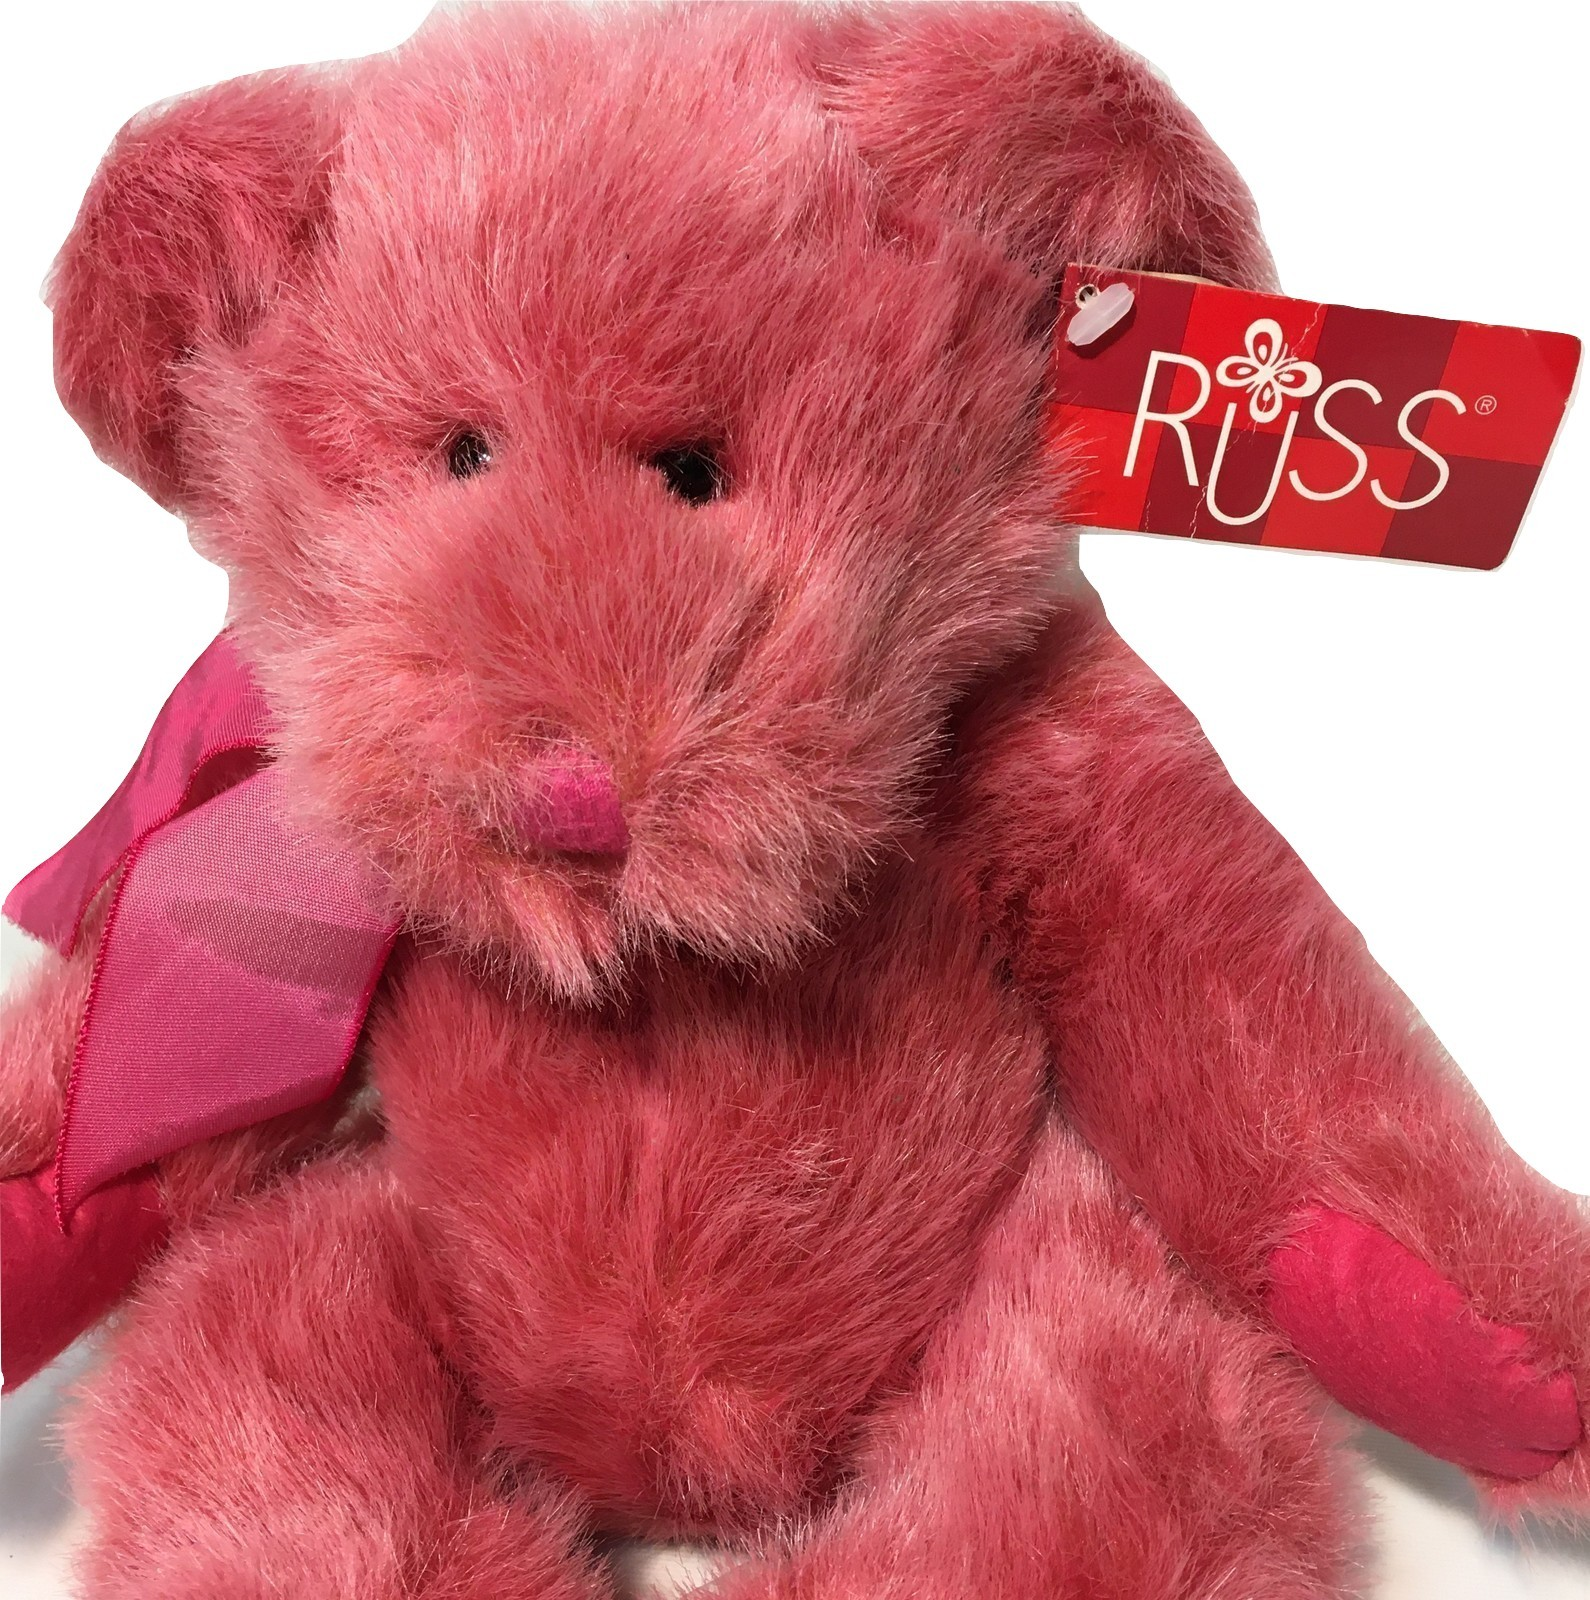 Primary image for Luv'ums Plush Teddy Bear Russ Stuffed Animal Magenta Pink Bean Bag Toy 13""